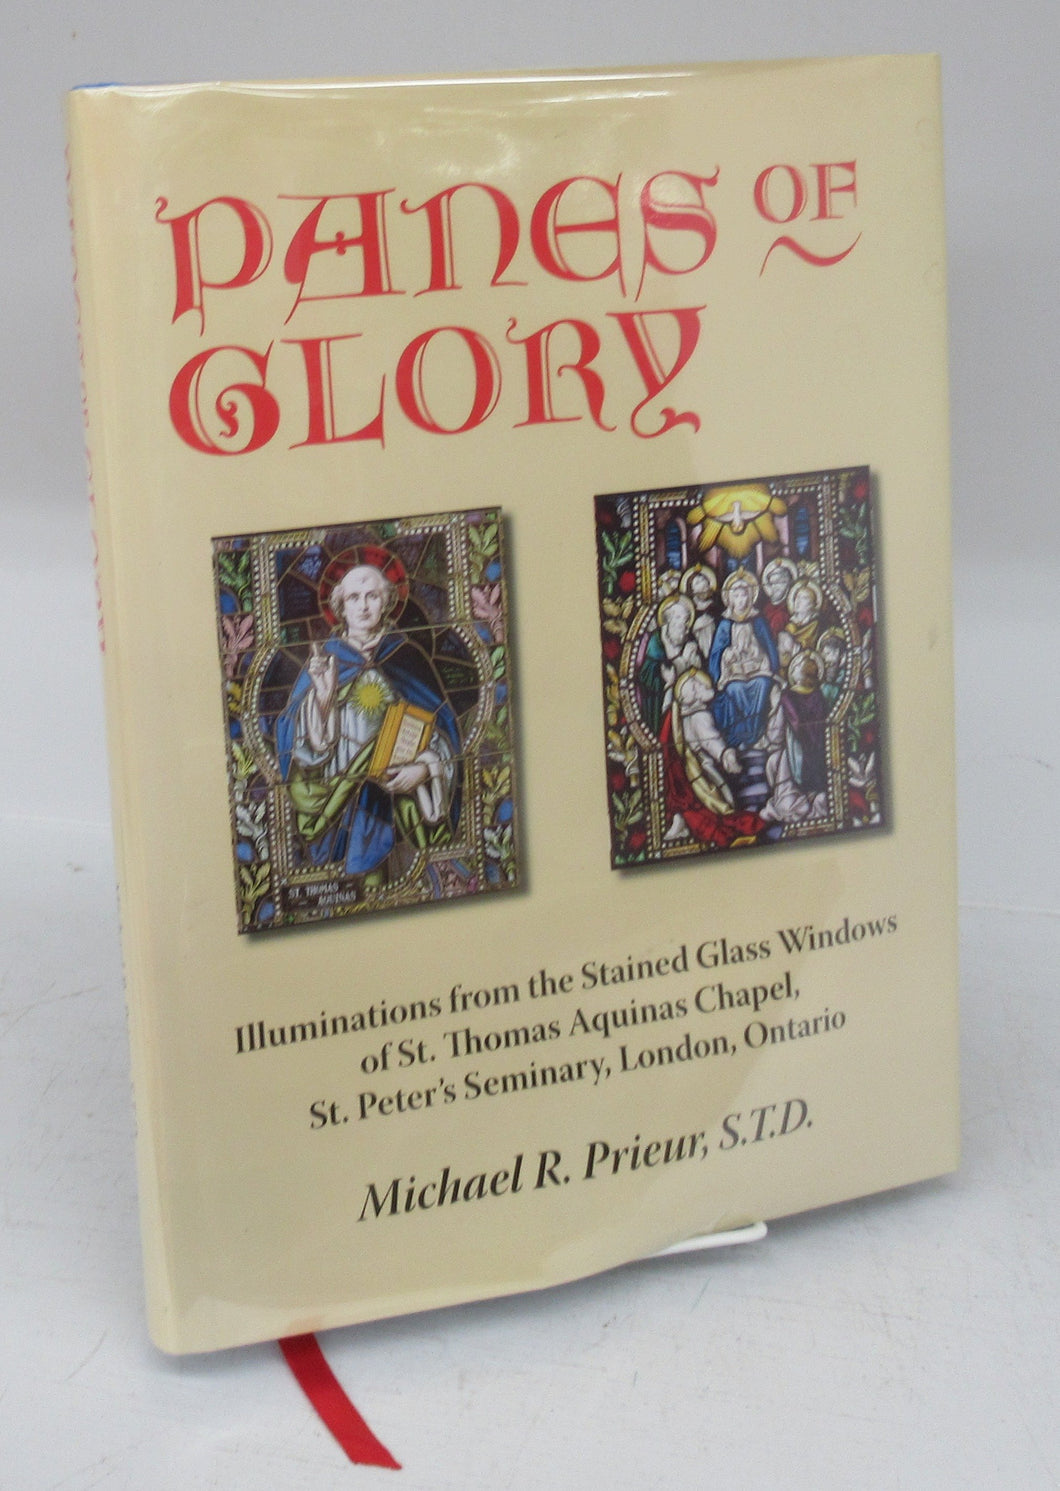 Panes of Glory: Illuminations from the Stained Glass Windows of St. Thomas Aquinas Chapel, St. Peter's Seminary, London, Ontario